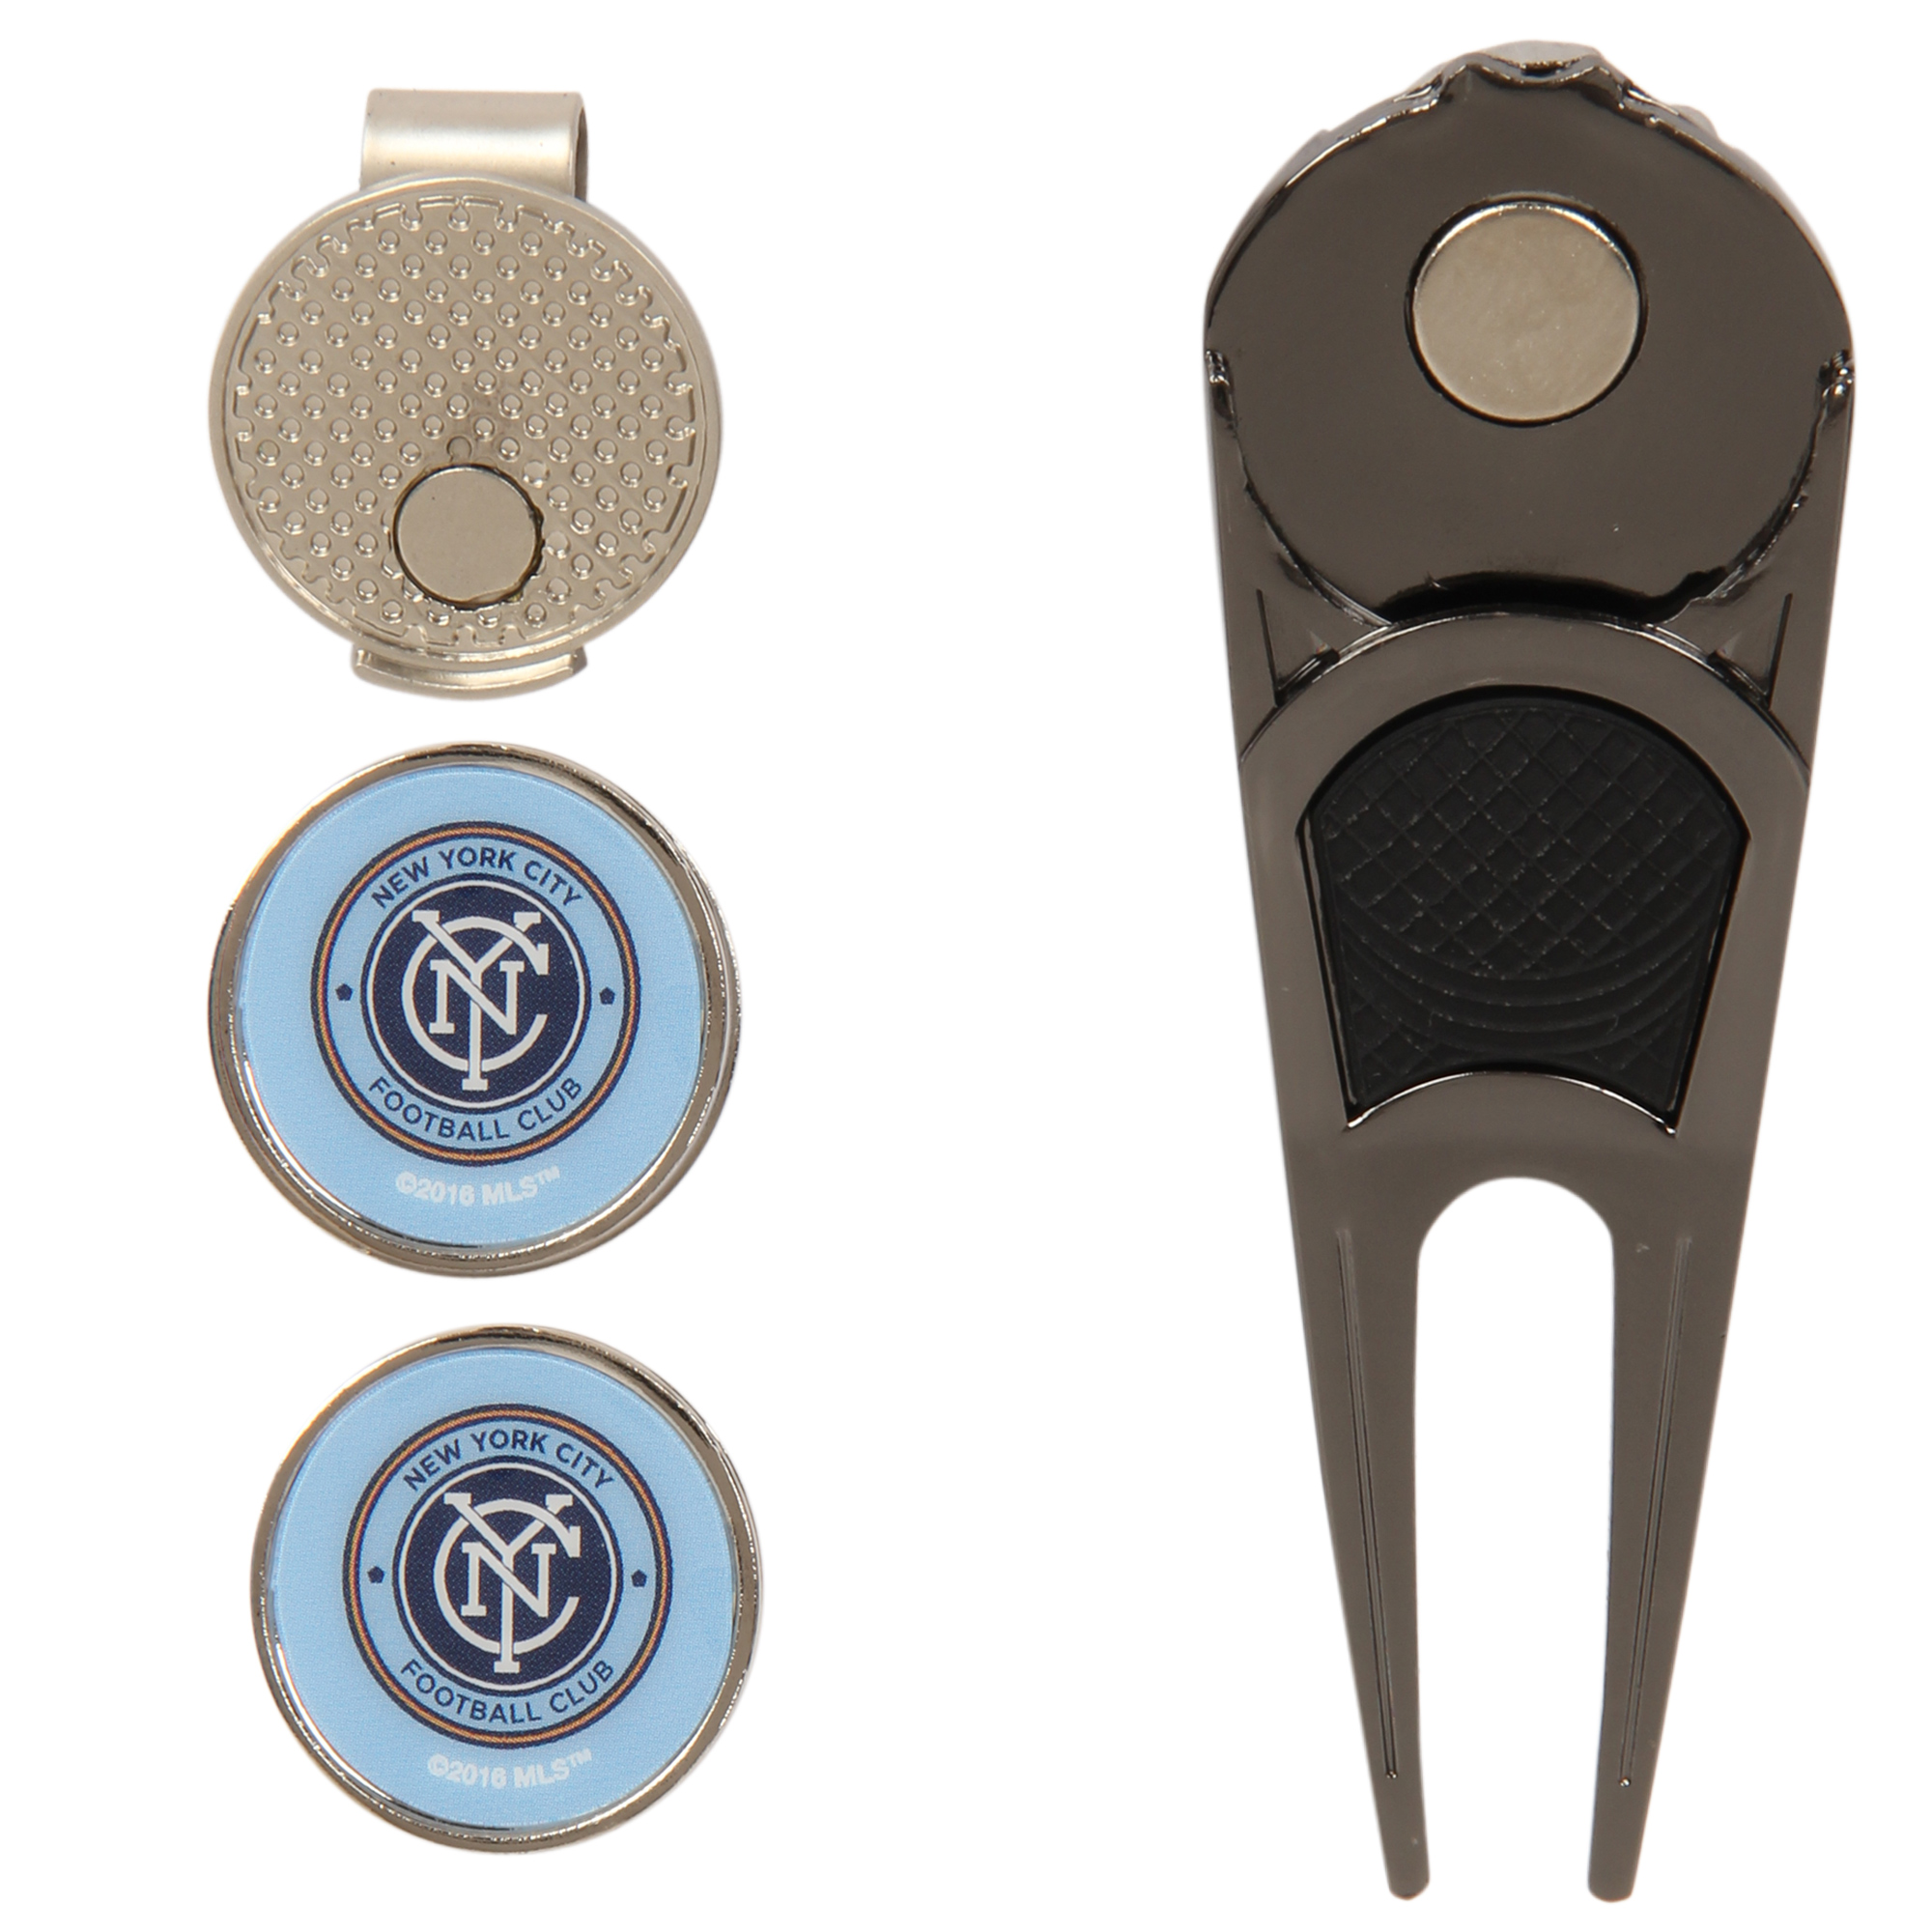 New York City FC WinCraft Divot Tool & Hat Clip Combo Set - No Size